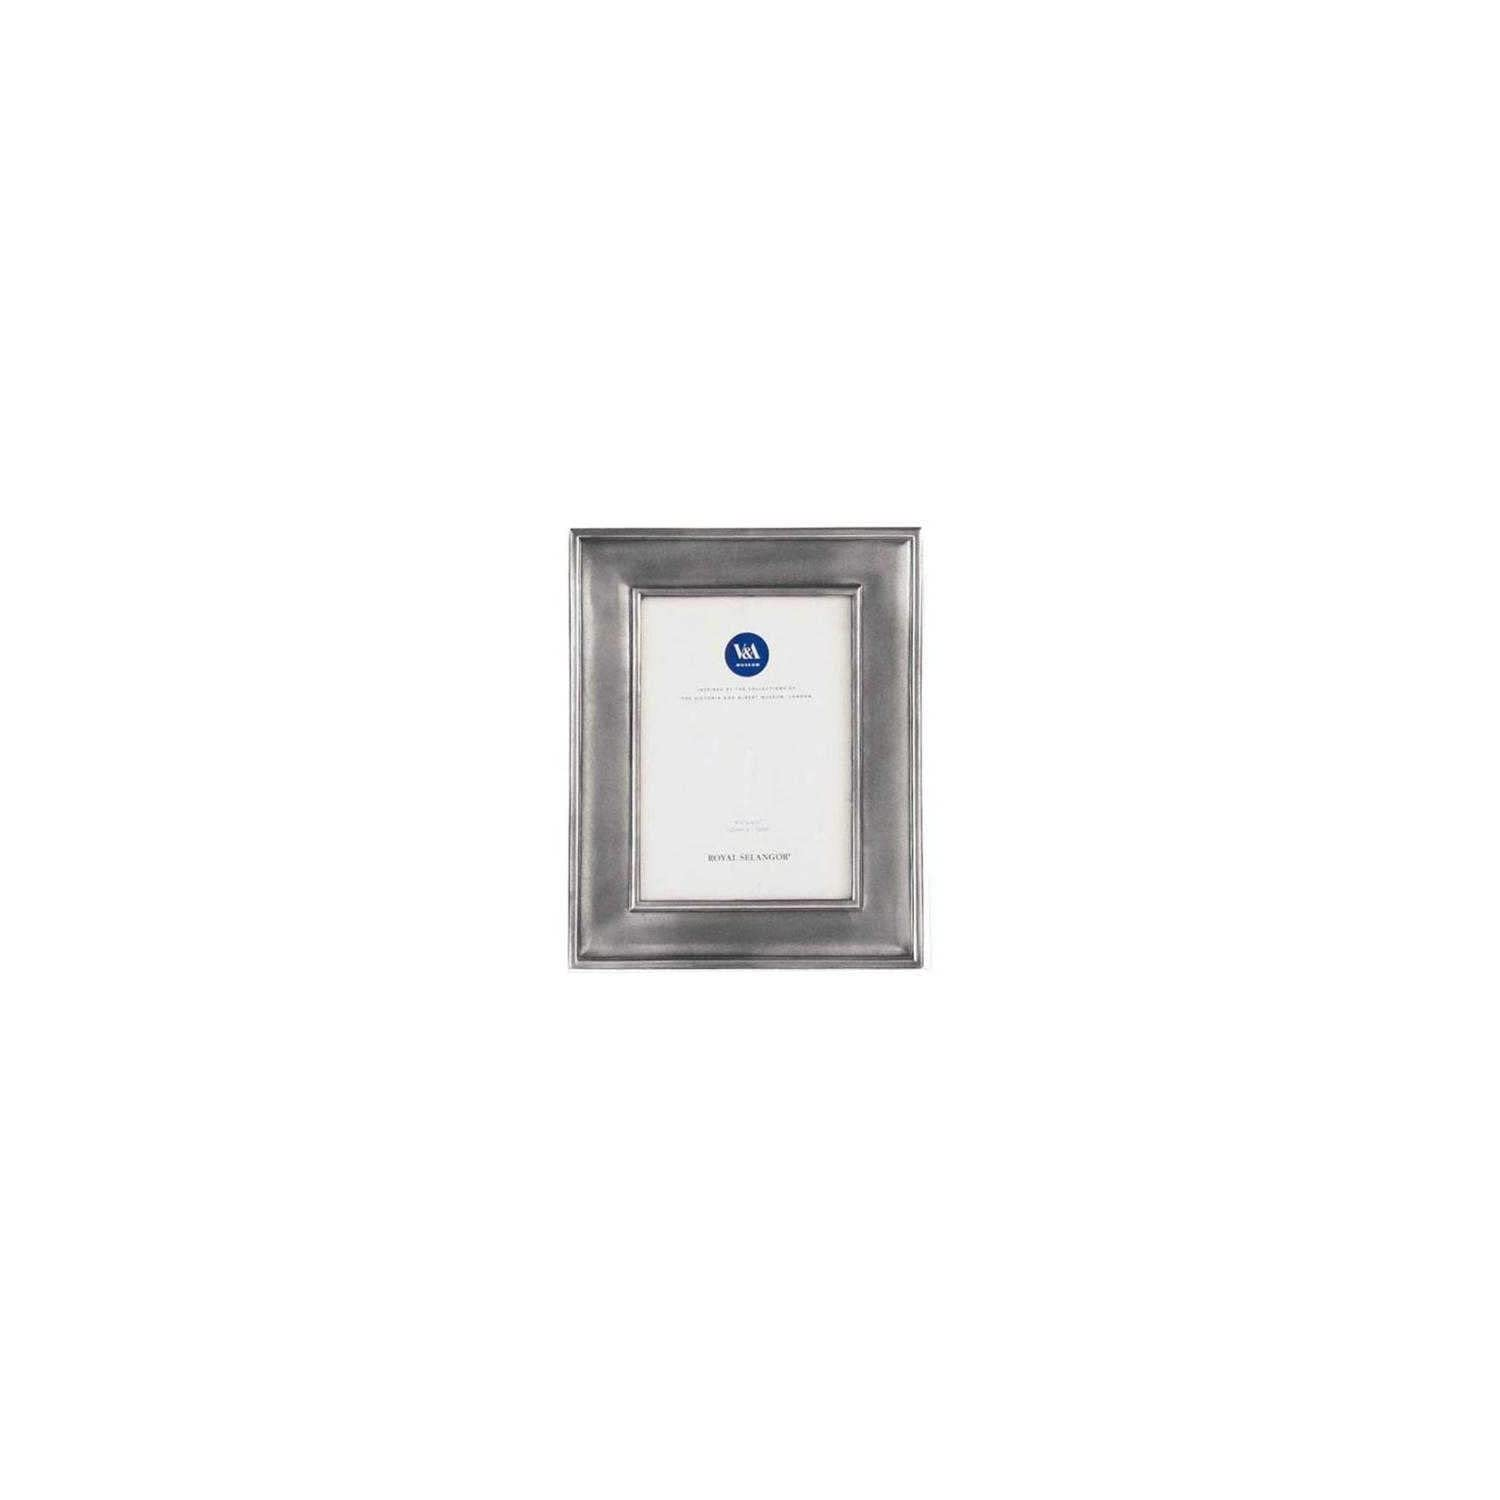 Royal Selangor 013059A English Photo Frame, One Size, Pewter